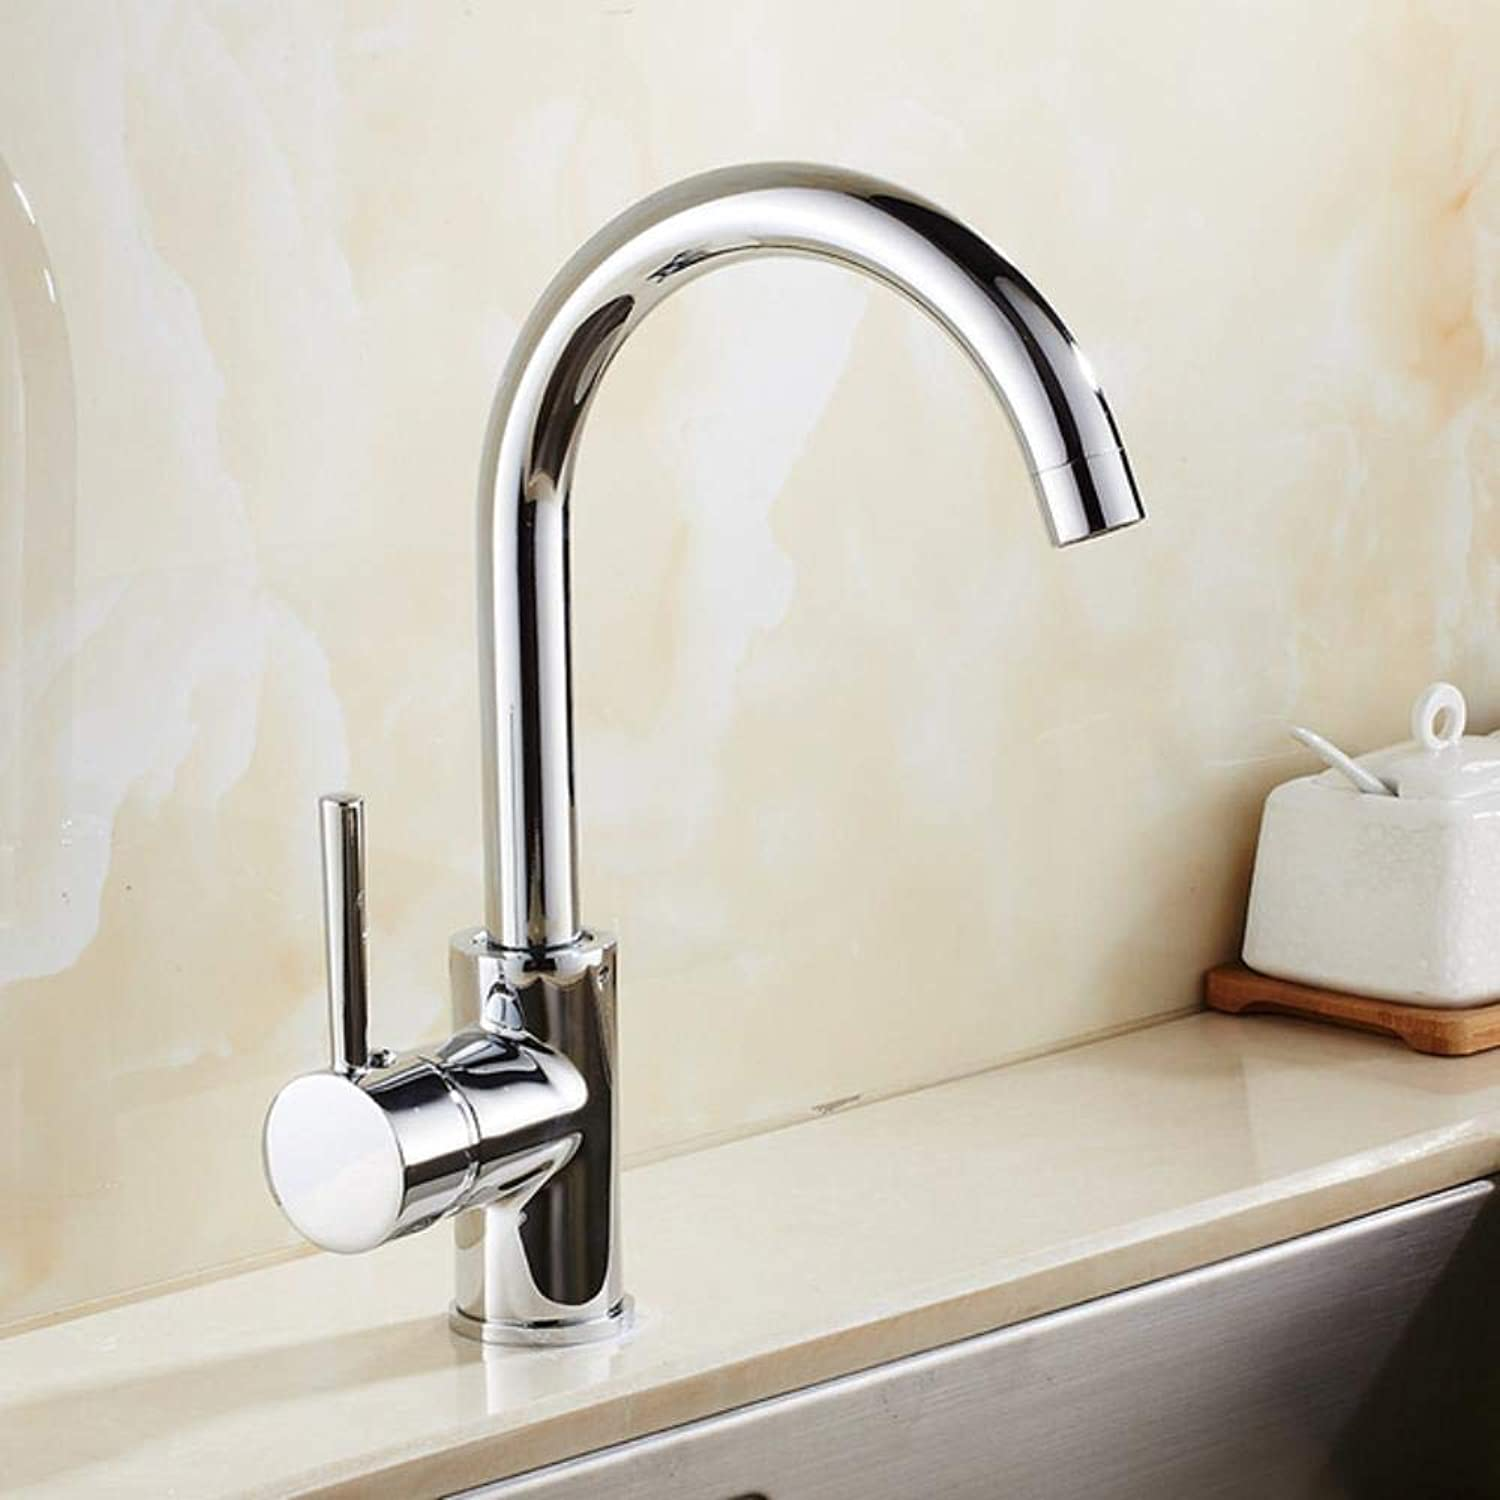 Kai&Guo Four Styles Chrome Brushed Kitchen Mixer Torneria Deck Mounted Black Kitchen Sink Water Faucet 8076 On, Polished